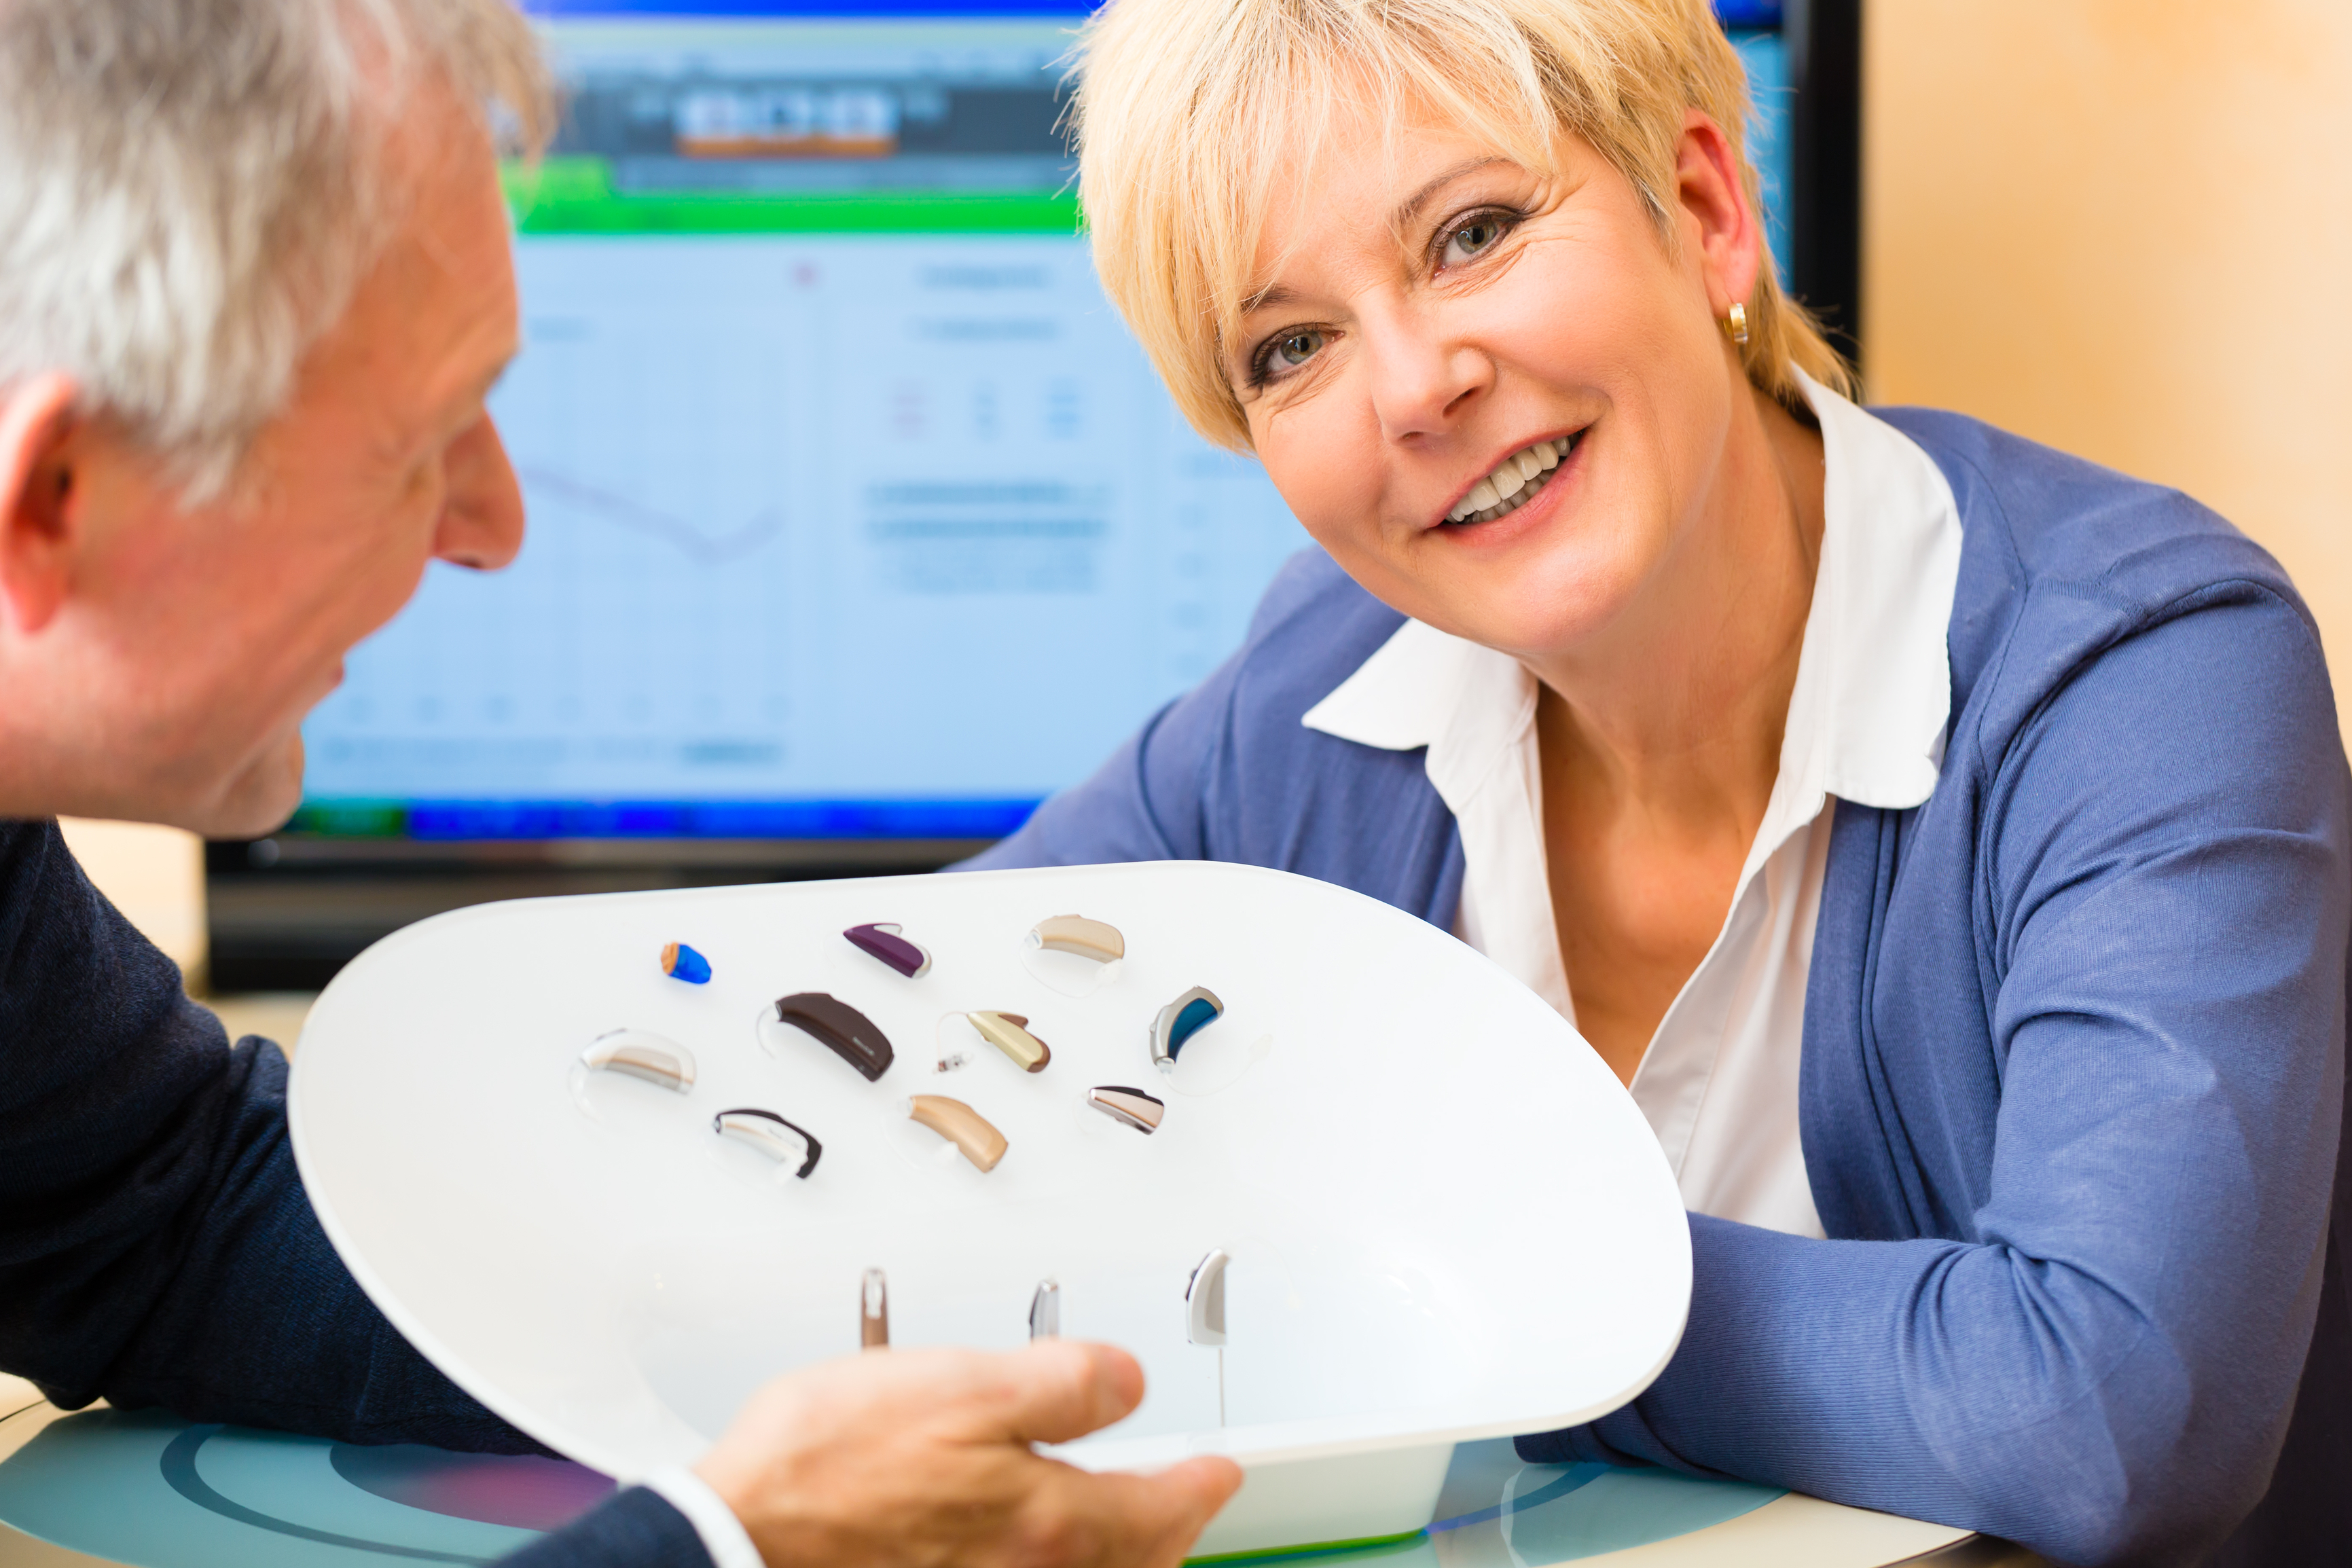 Hearing Loss and Over-the-Counter Hearing Aids